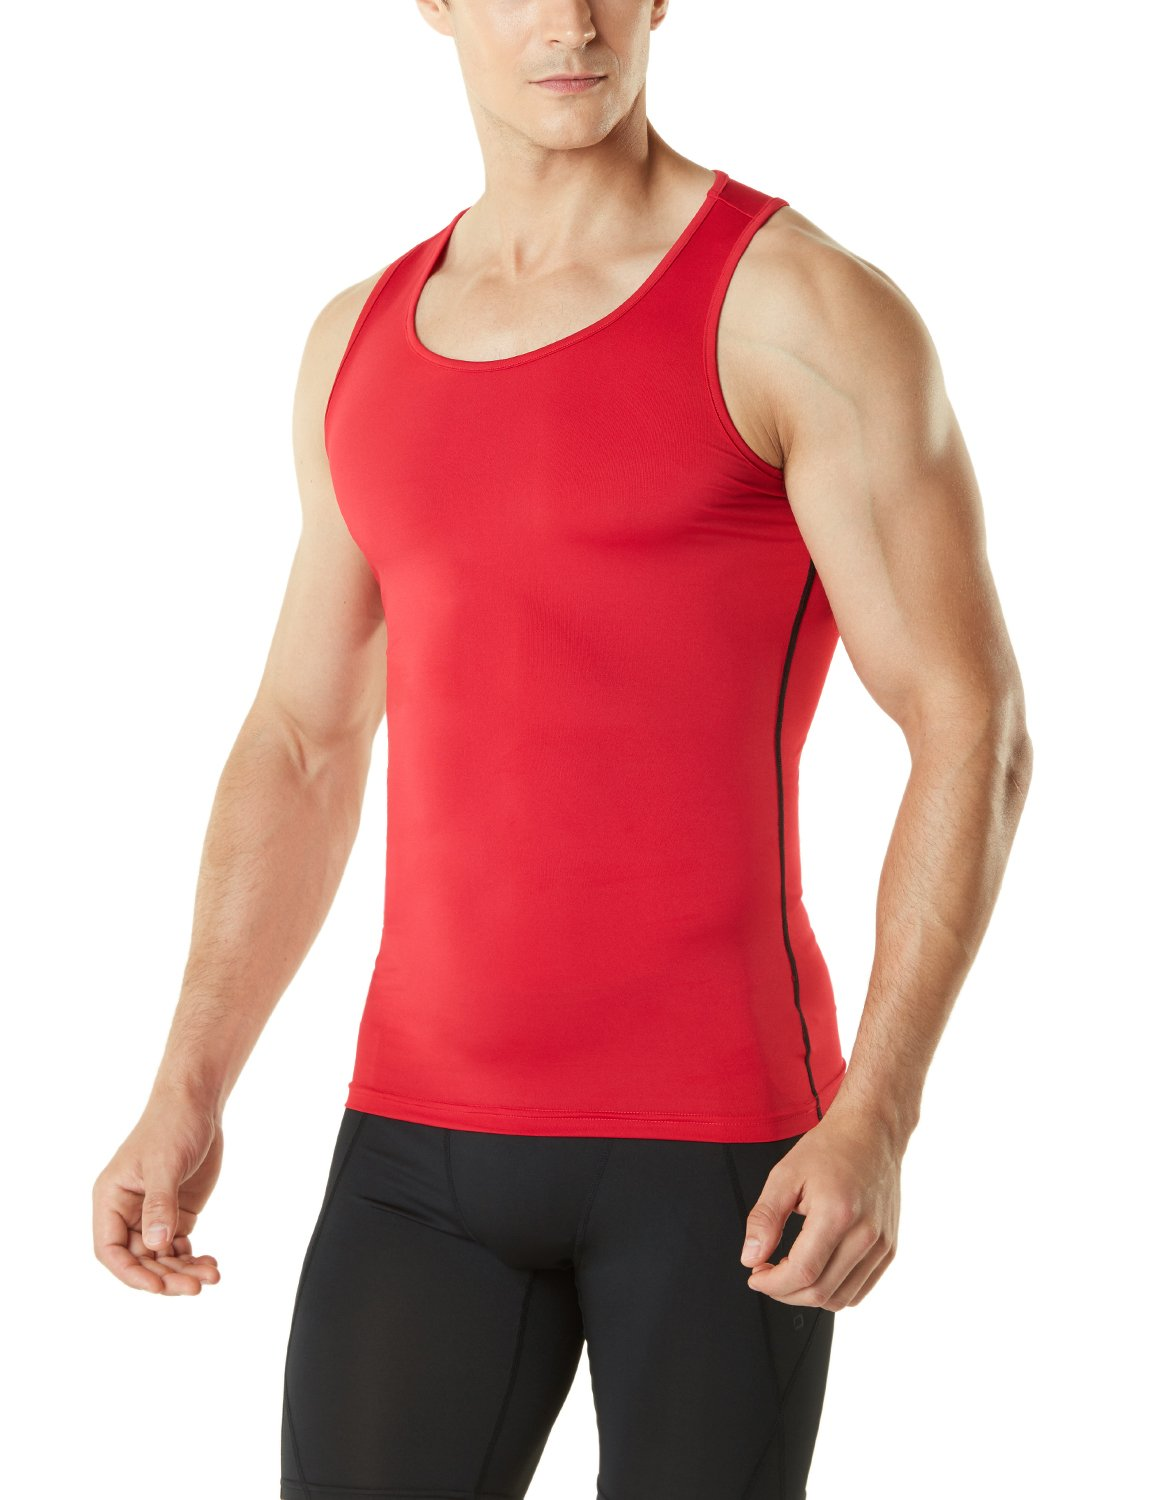 TSLA Men's Sleeveless Muscle Tank Top Cool Dry